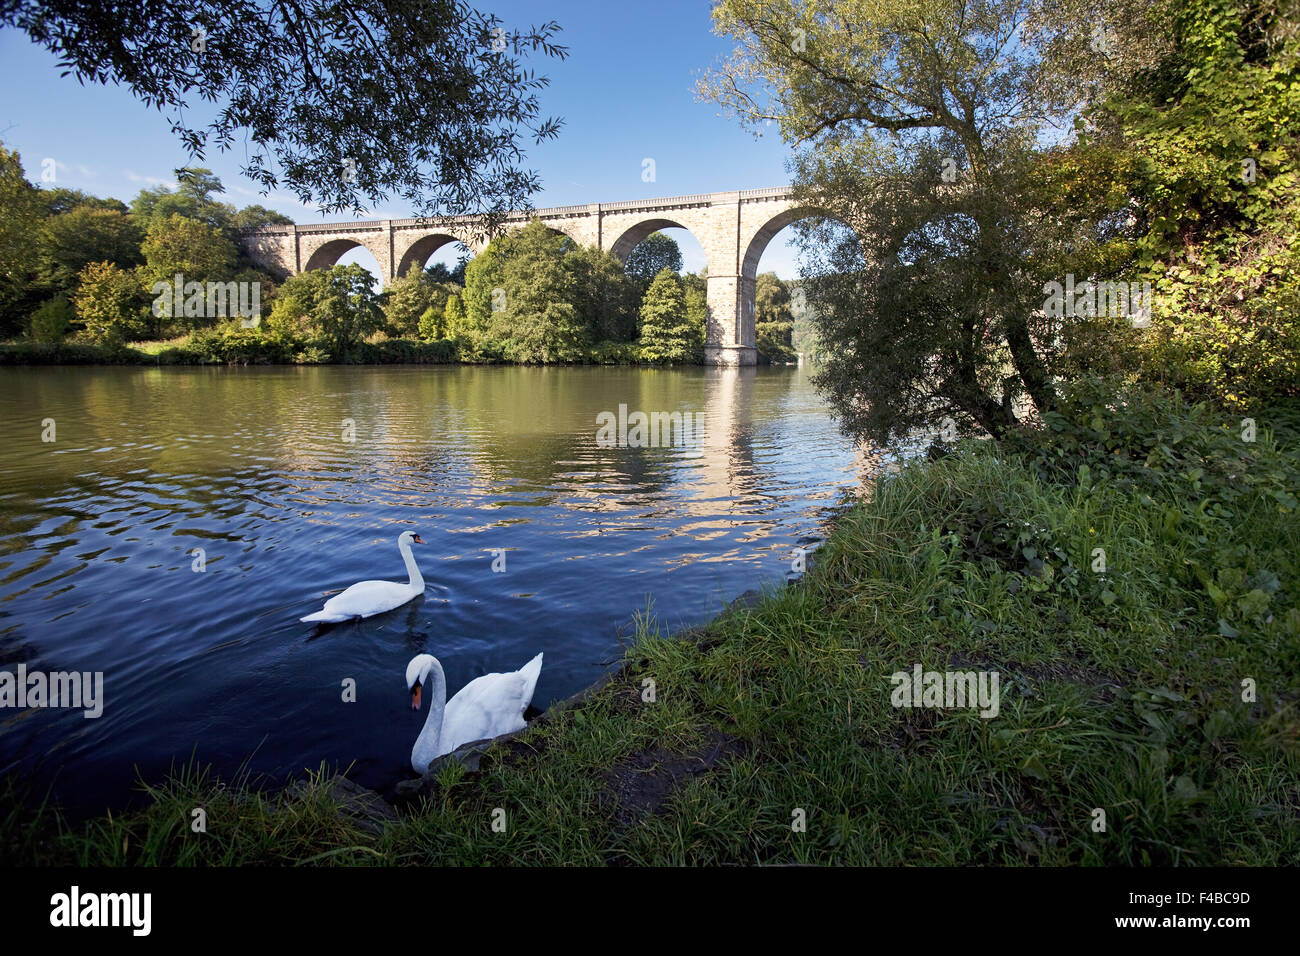 Viaduct, river Ruhr, Herdecke, Germany. - Stock Image